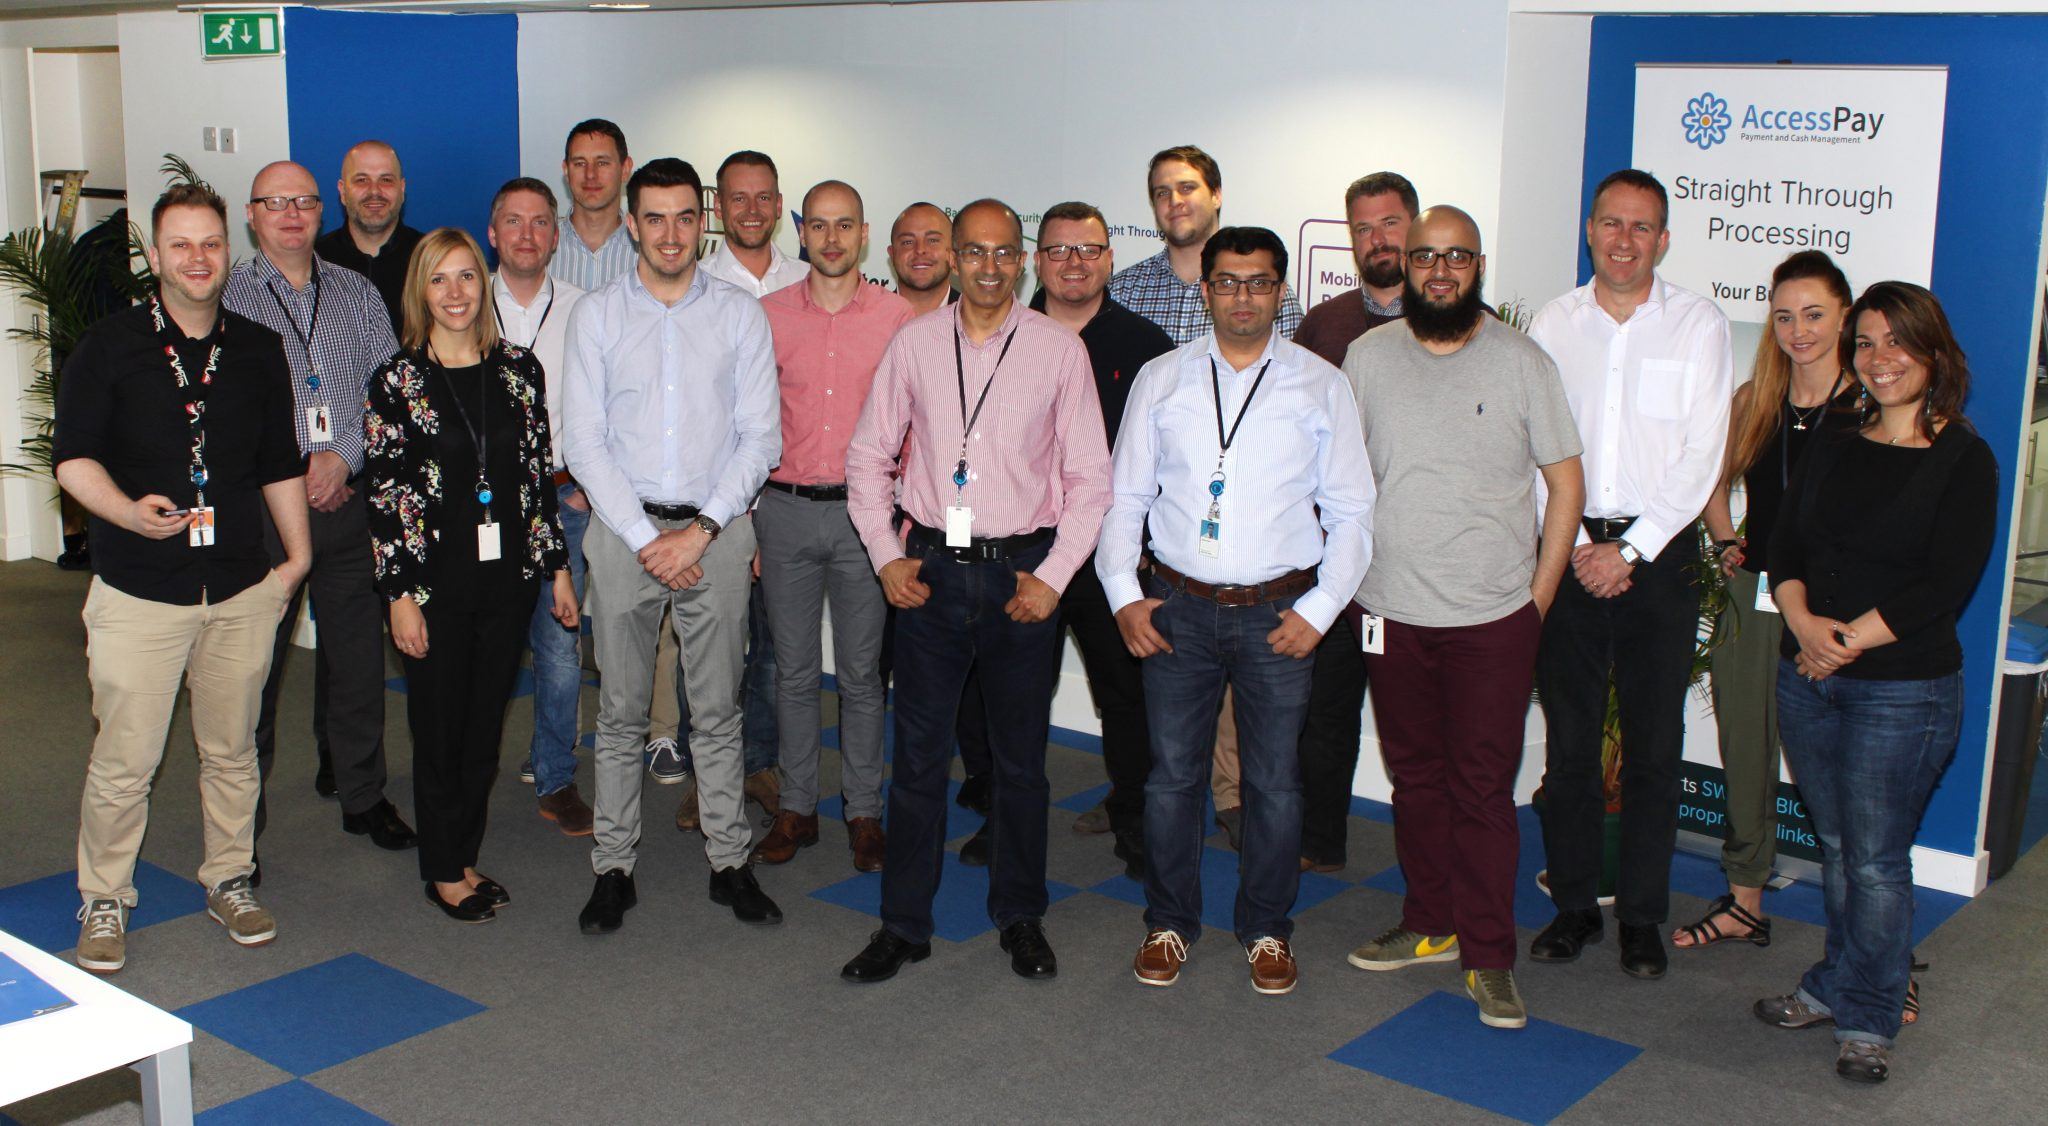 The AccessPay team in Manchester, UK